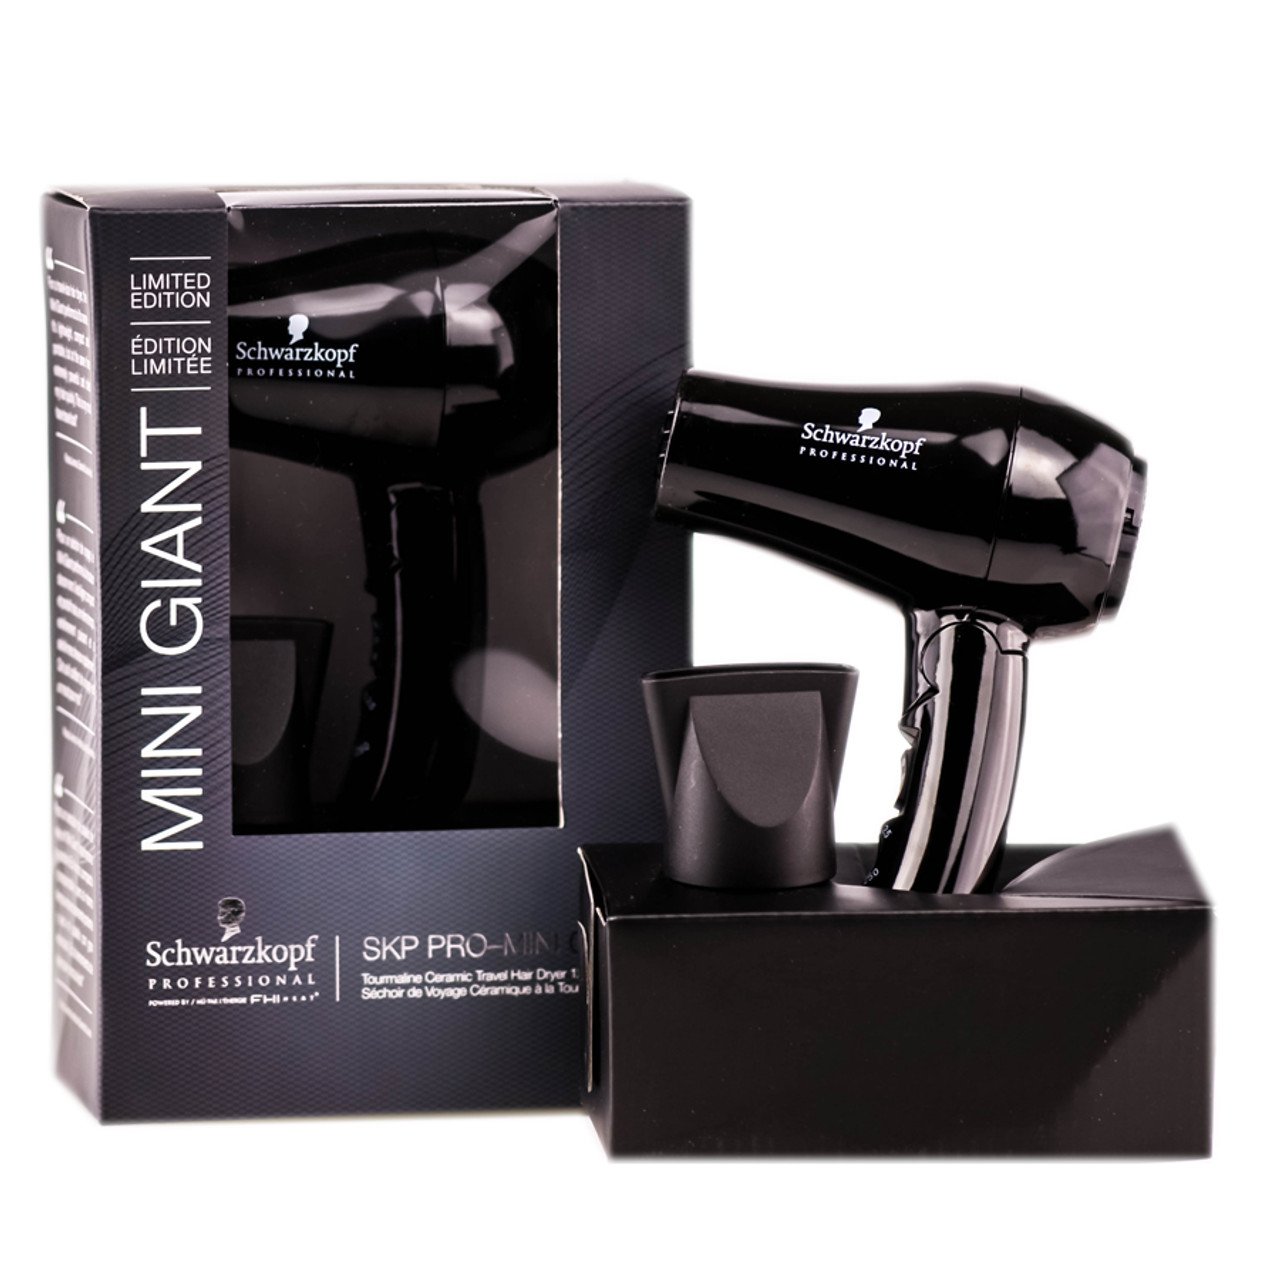 Schwarzkopf Skp Gift Set Sleekshop Com Formerly Sleekhair